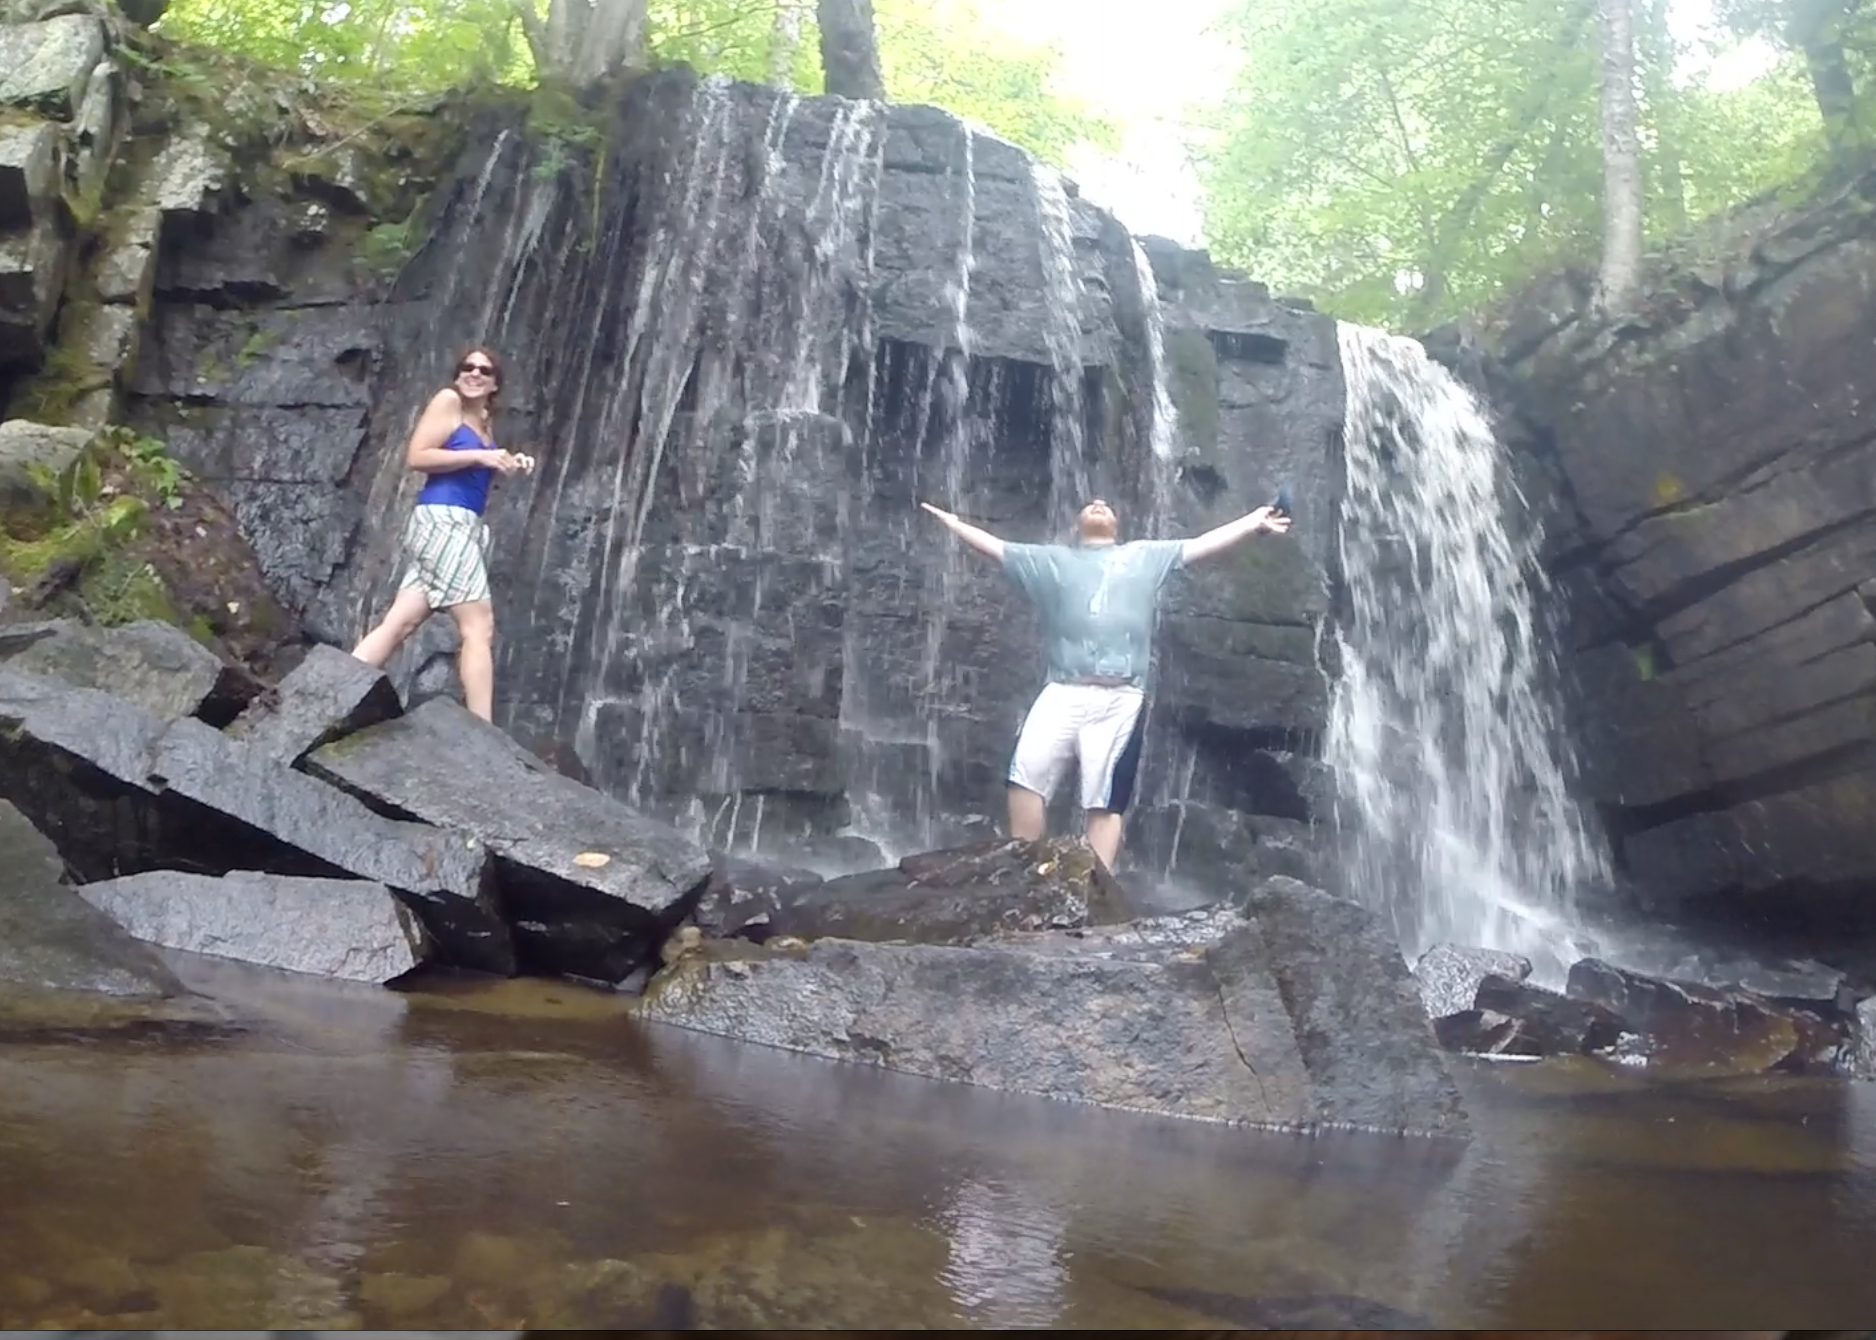 How often do you get to stand under an ADK waterfall?